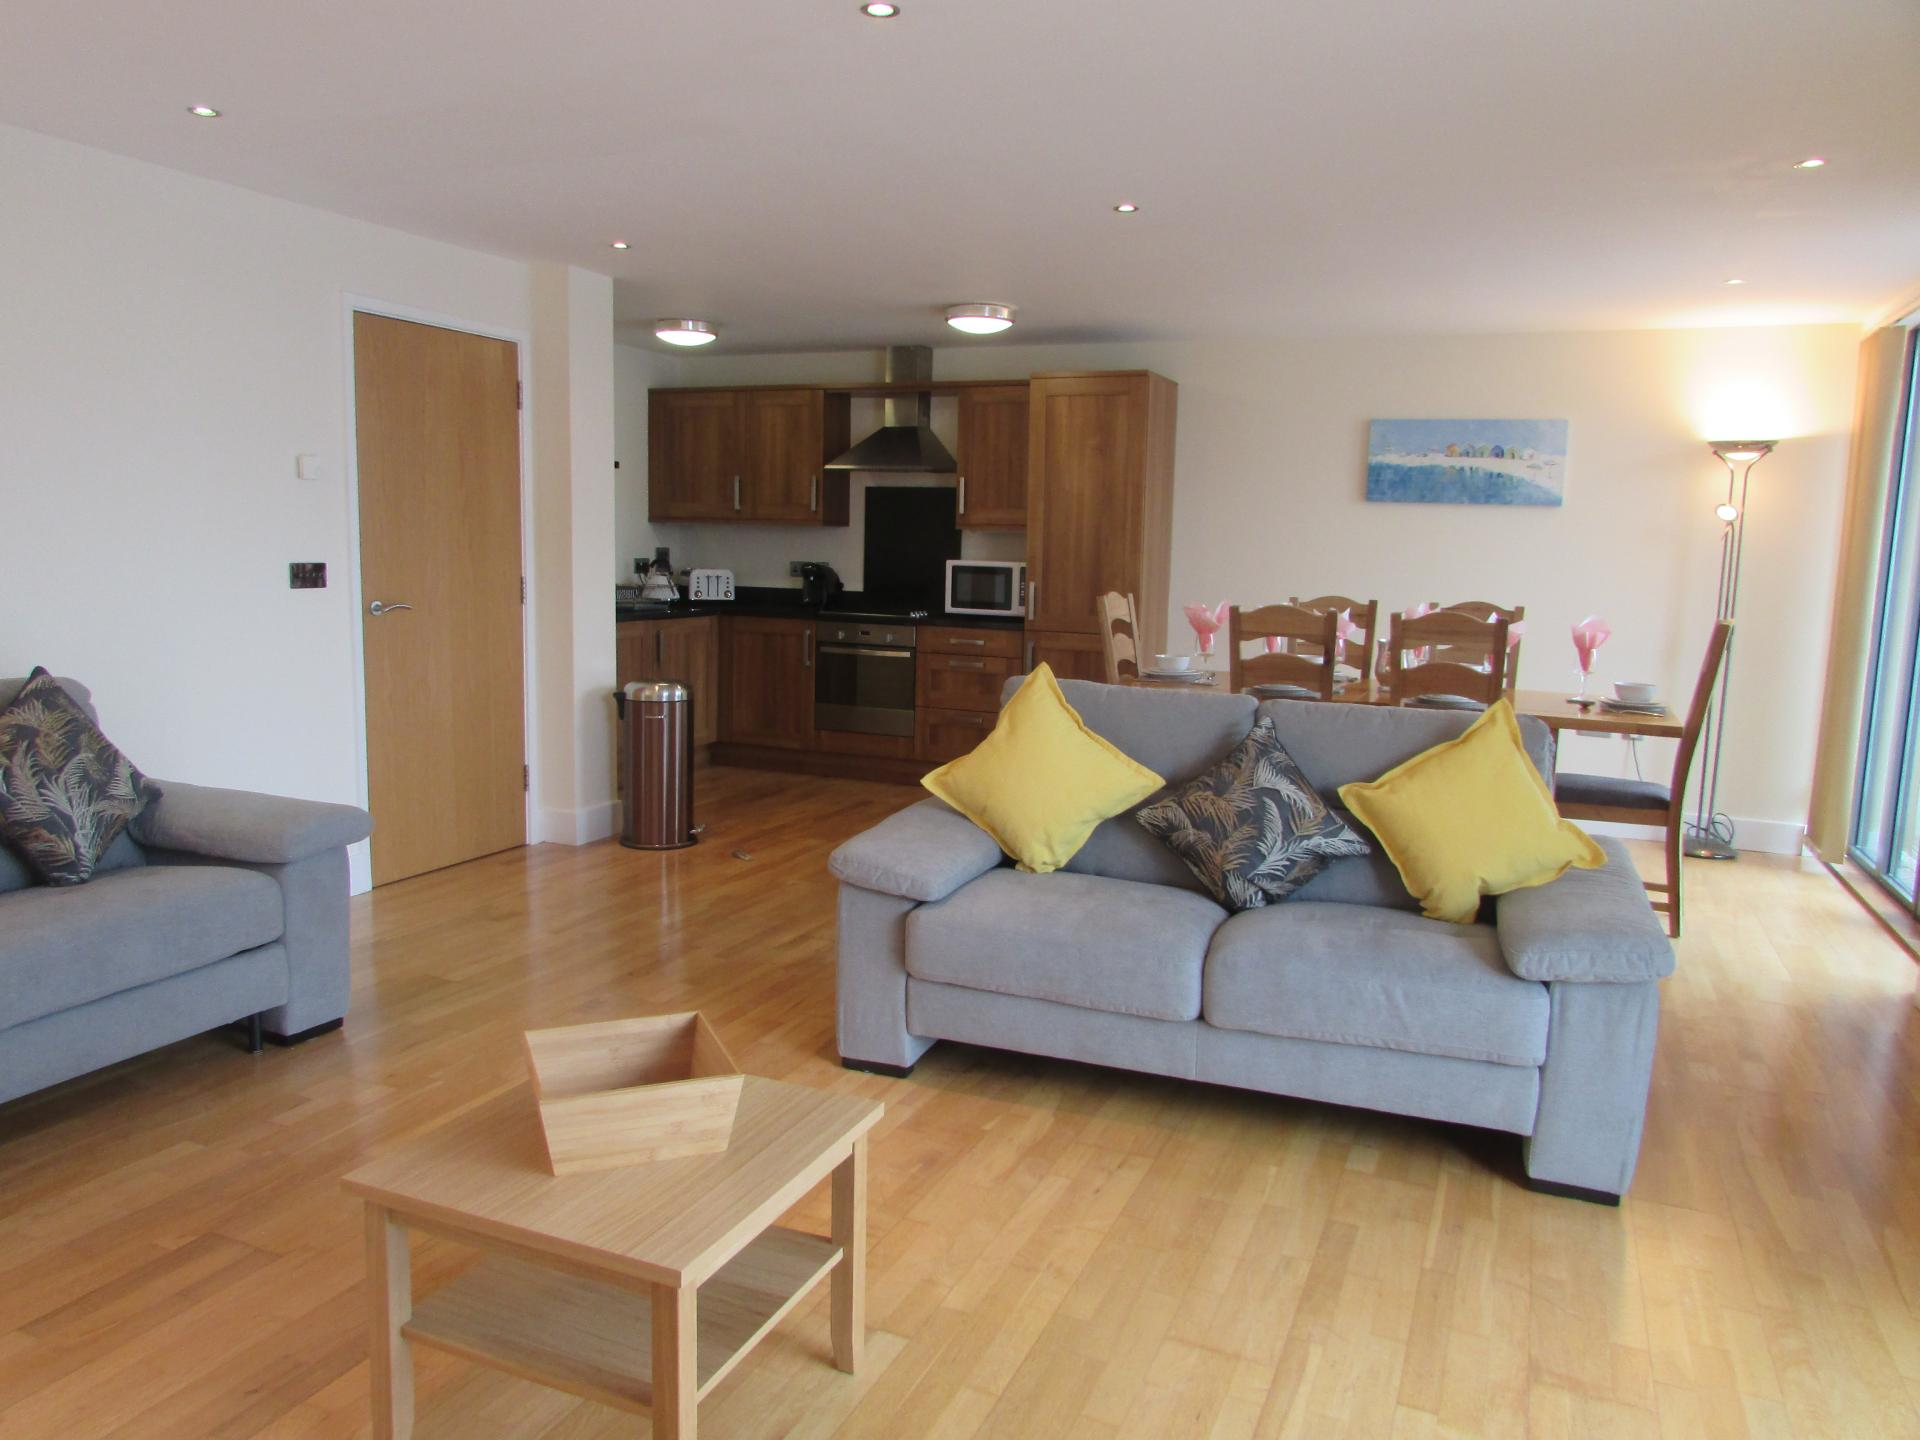 Living Room at William Yard Apartment, Millbay, Plymouth